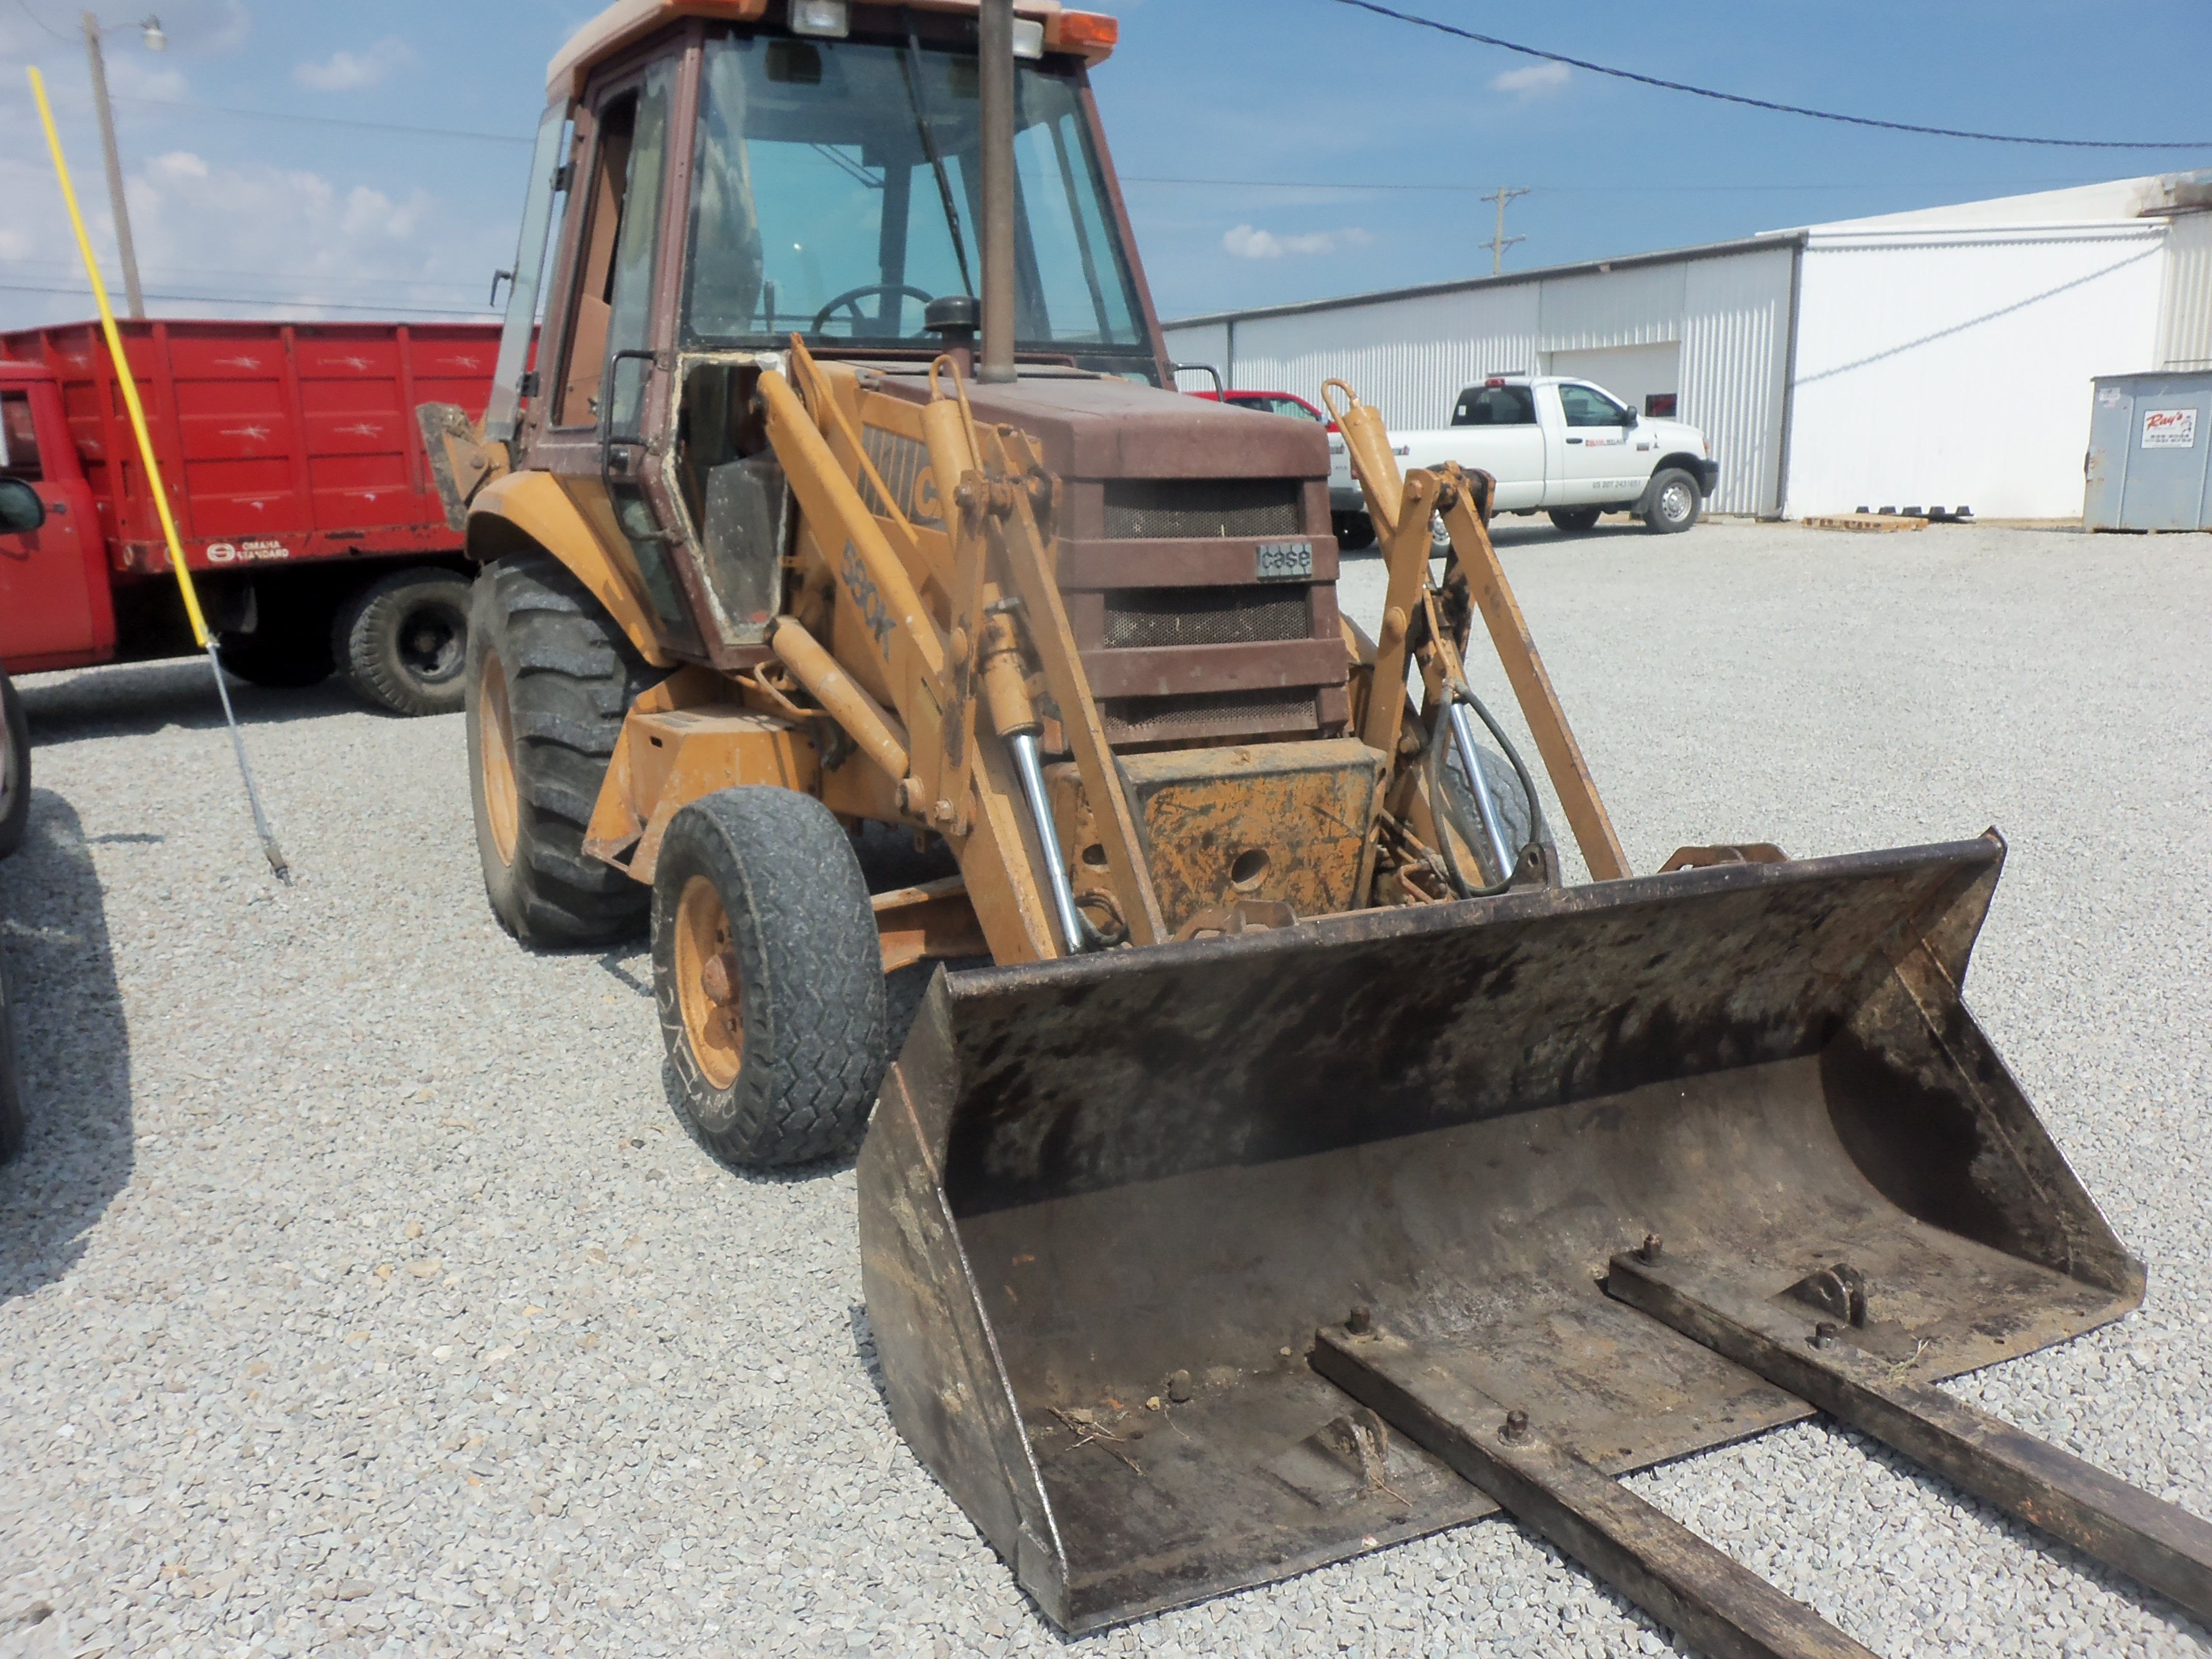 Case 580k backhoe case construction equipment pinterest for Avis e case construction